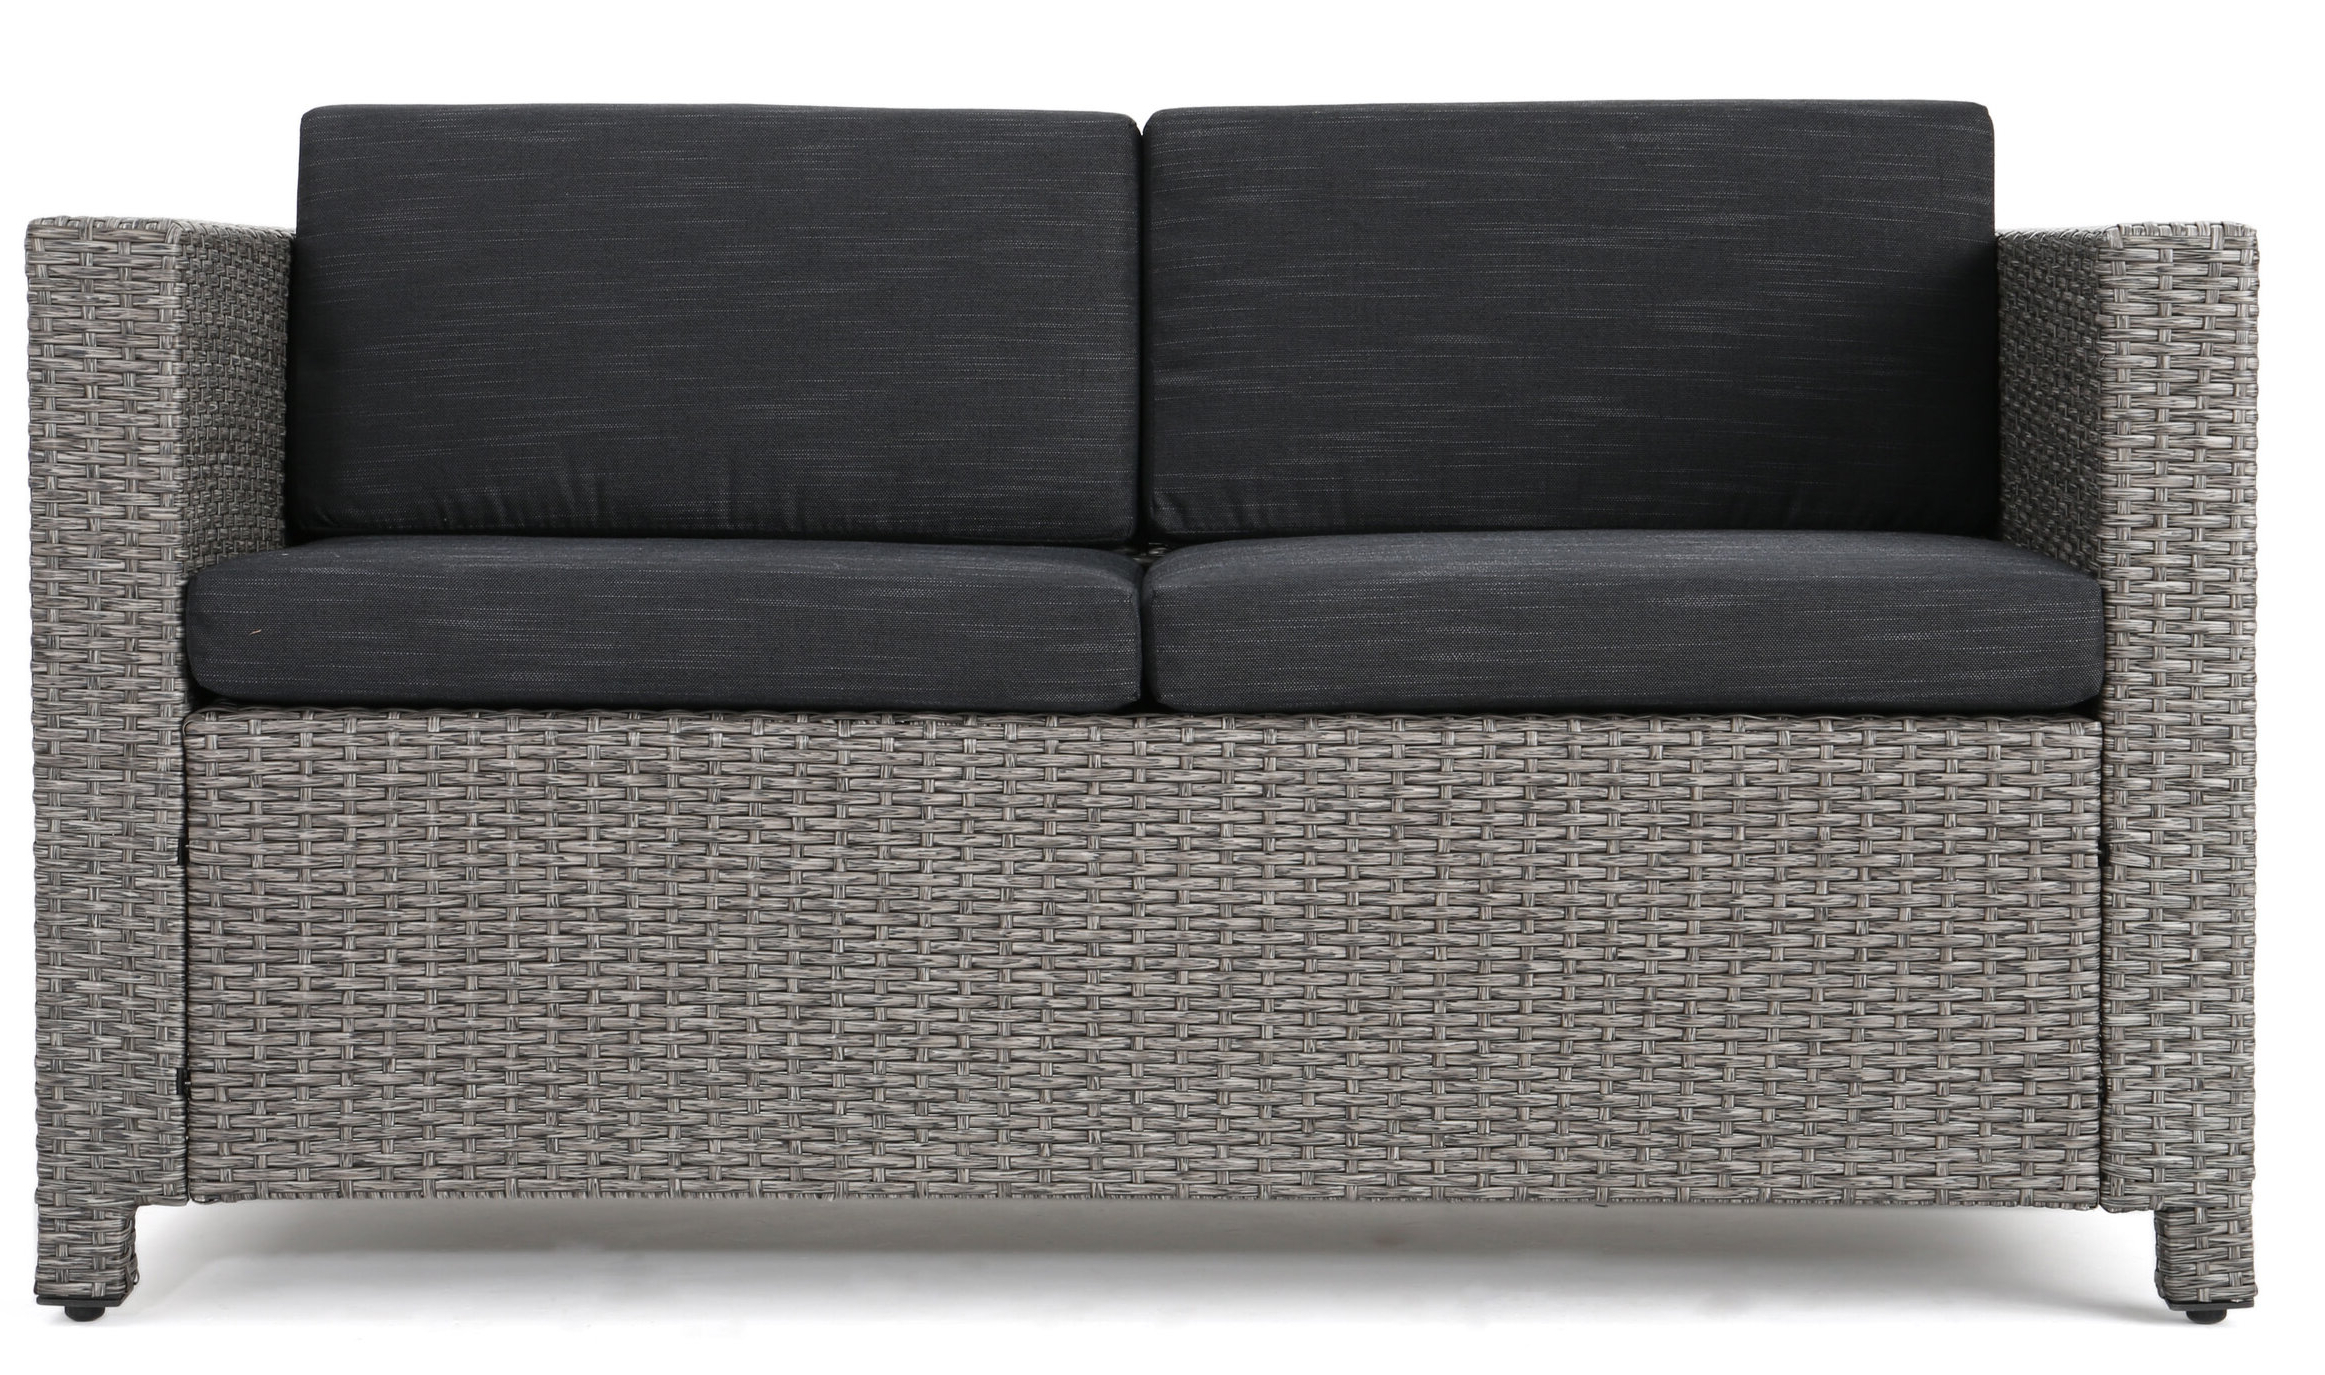 Furst Outdoor Loveseat With Cushions Intended For Popular Dayse Contemporary Loveseats With Cushion (View 15 of 25)